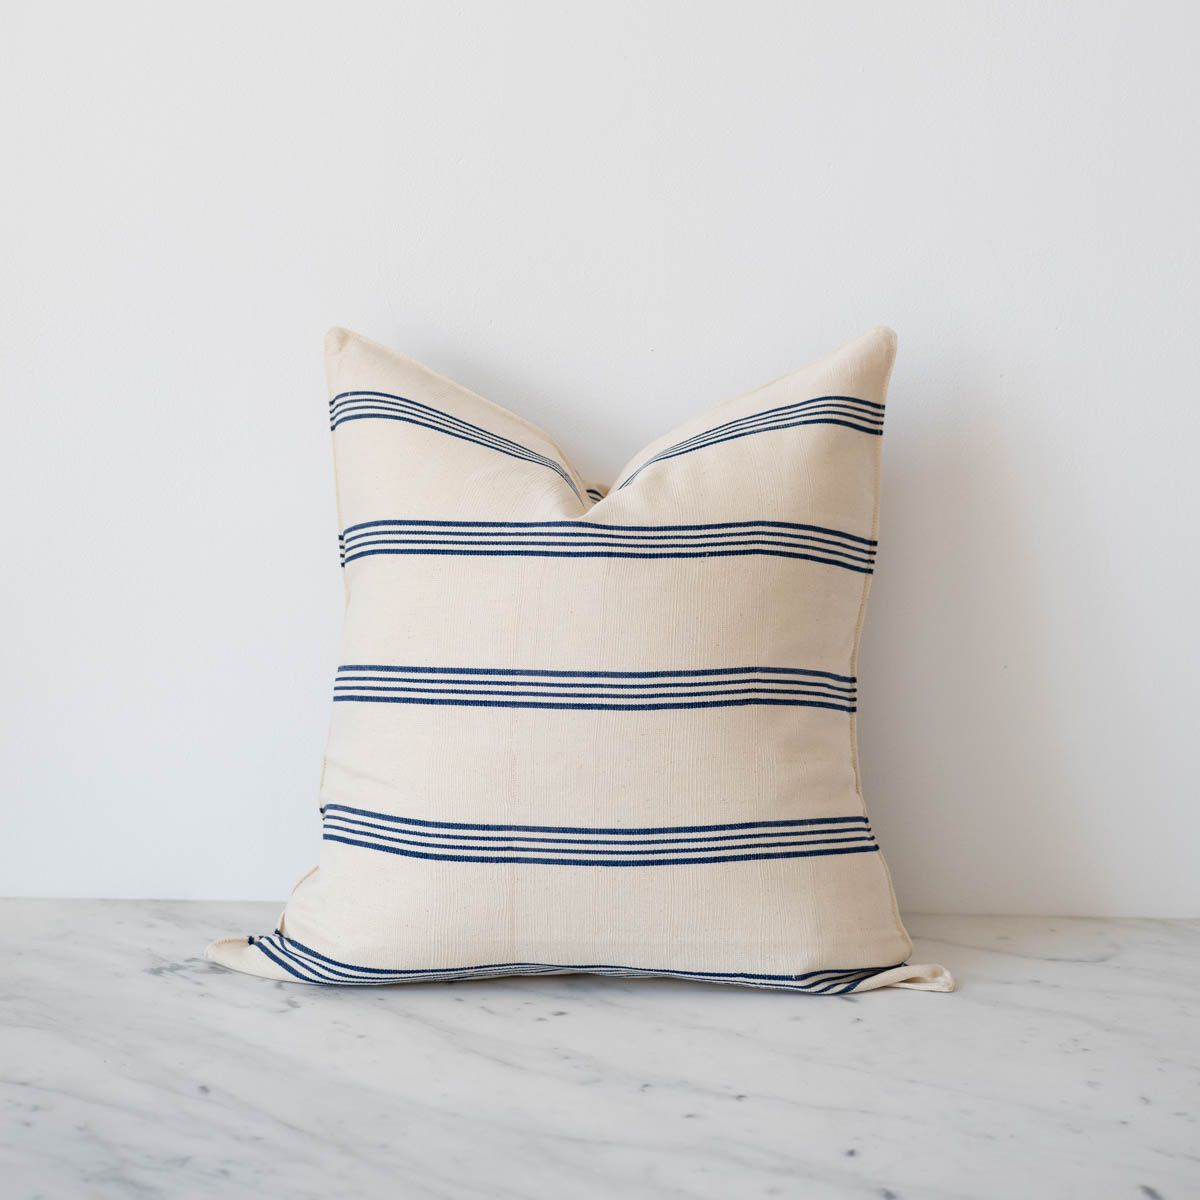 Add a pop of colour to your living space with this luxurious handwoven and hand-dyed cushion cover. The envelope enclosure makes it easy to slip... read more